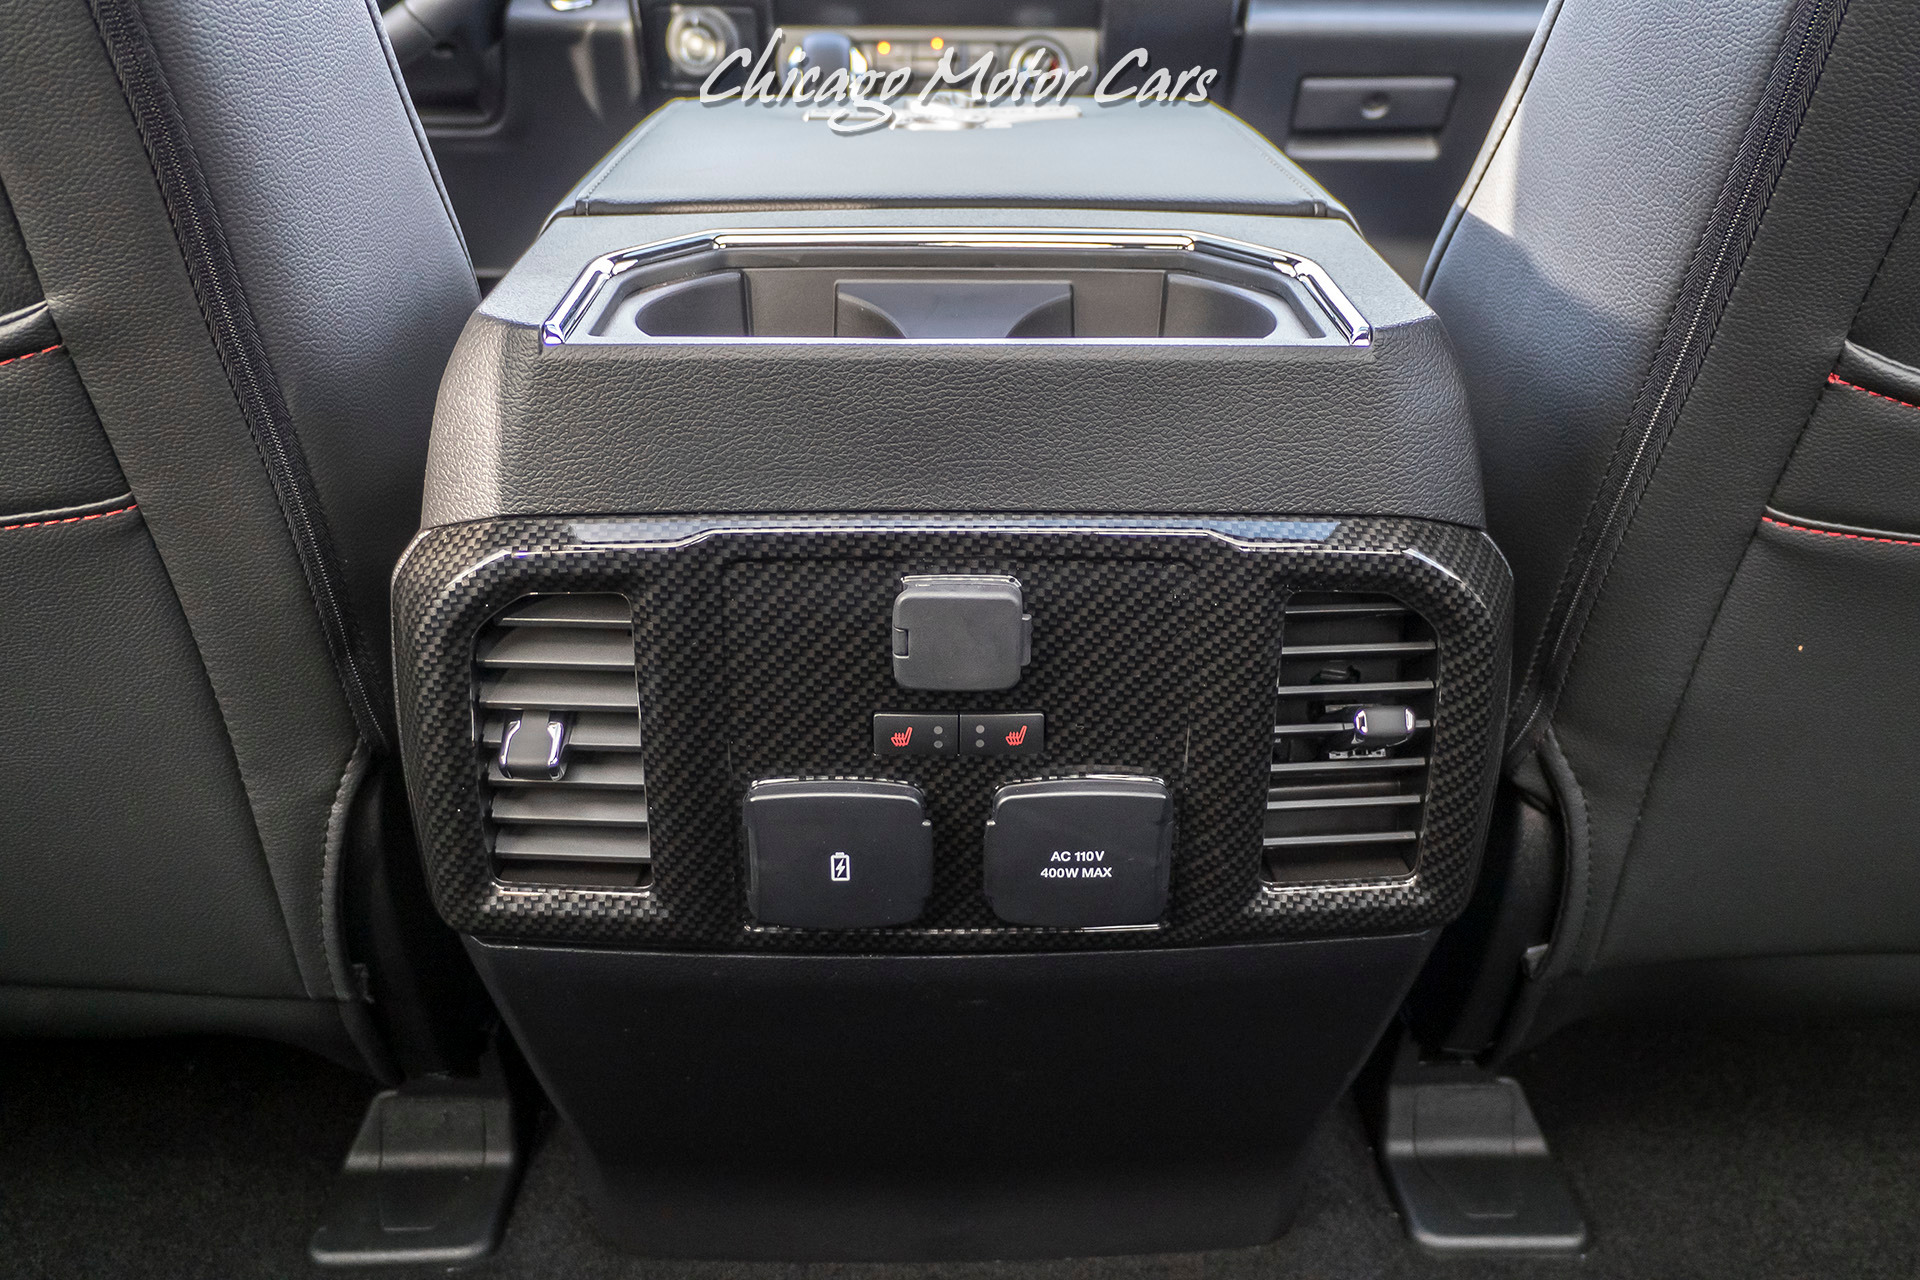 Used-2019-Ford-F-150-Lariat-4x4-Shelby-Pick-Up-Truck-MSRP-109k-LOADED-wOPTIONS-755HP-Engine